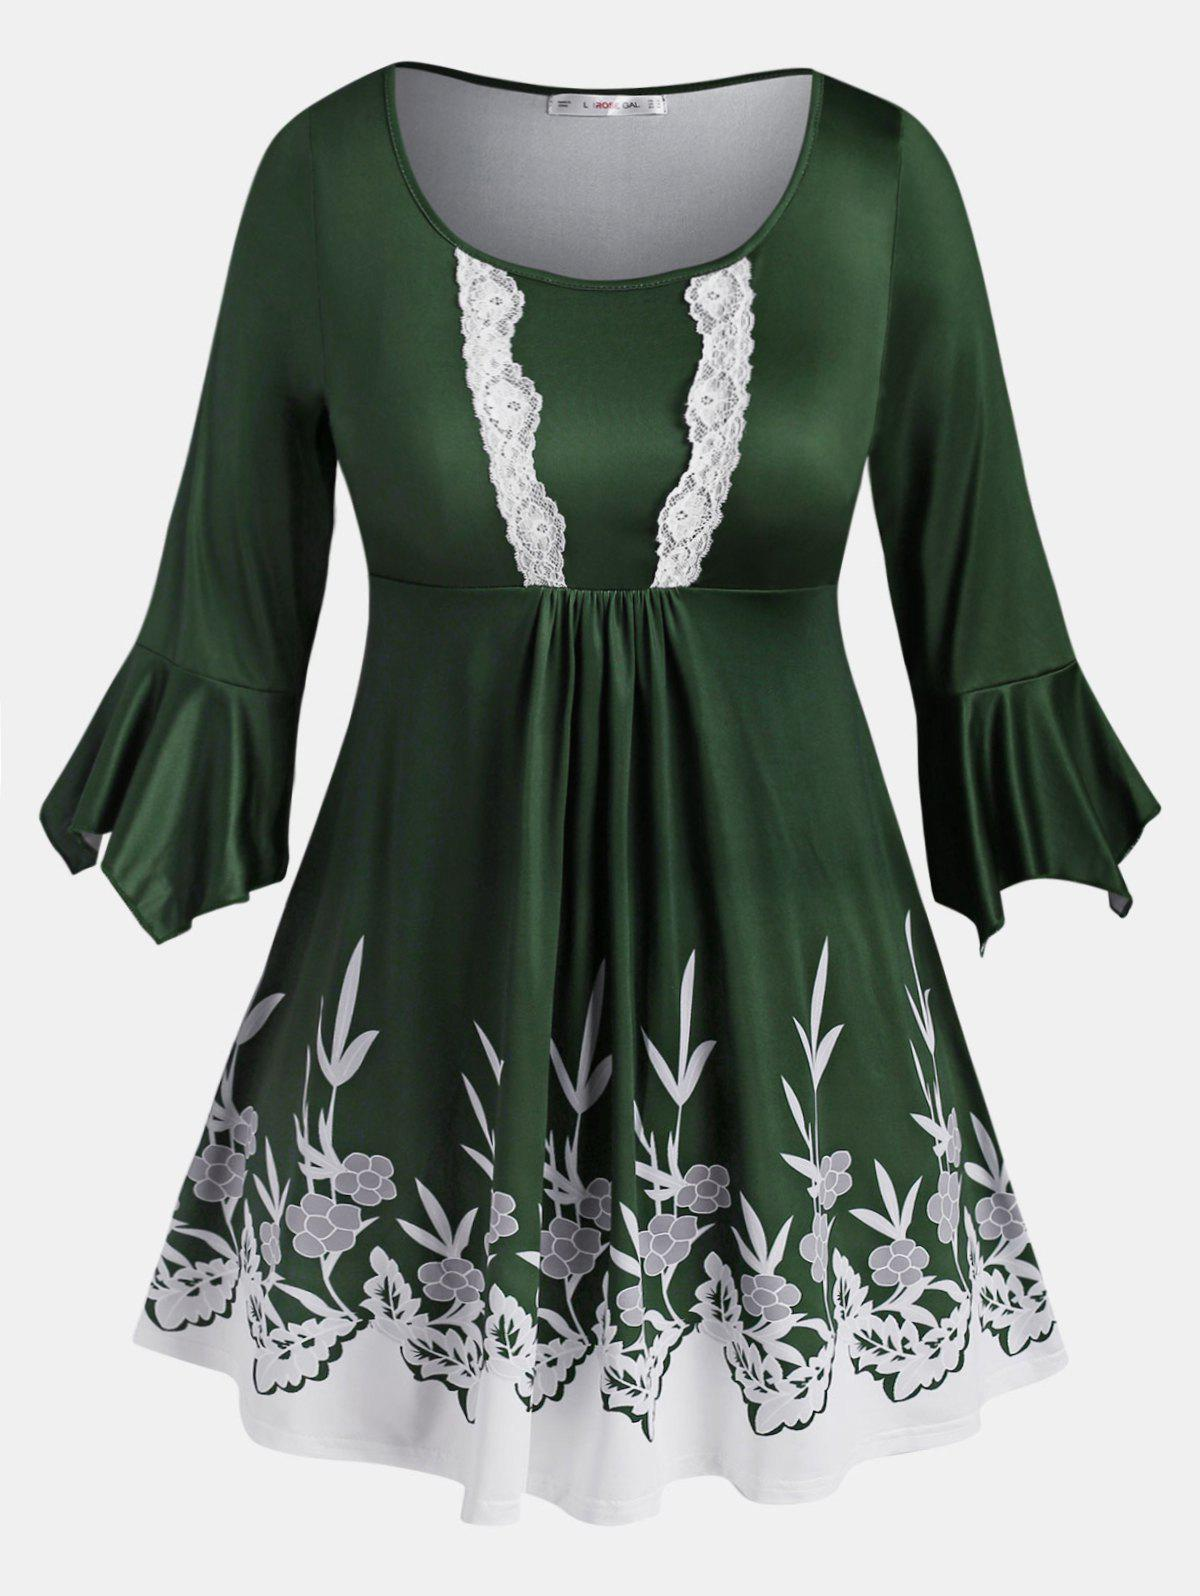 Lace Trim Leaves Floral Flare Sleeve Plus Size Blouse - DEEP GREEN L